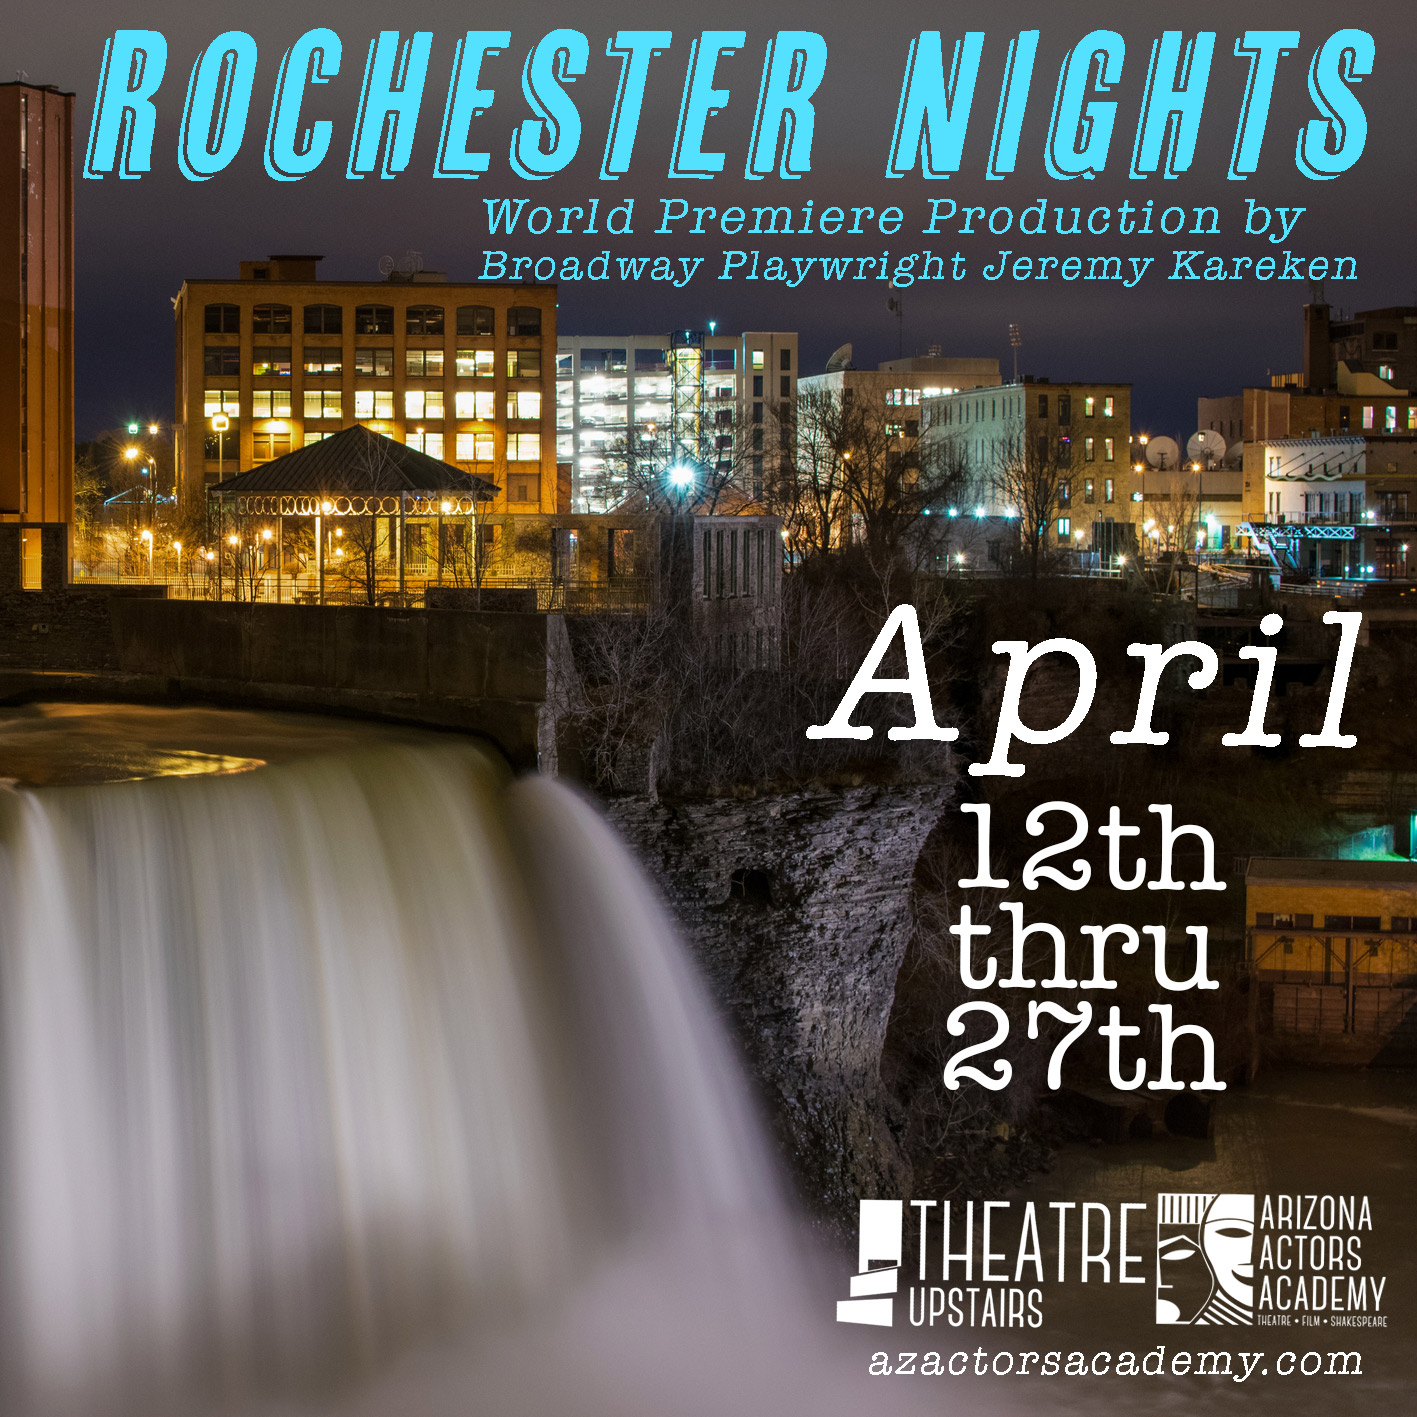 Ended 4/27/19 - ROCHESTER NIGHTS World Premier by Broadway Playwright Jeremy KarekenIt was an amazing show! Thank you all who came to see this! There will be more to follow. Stay tuned …